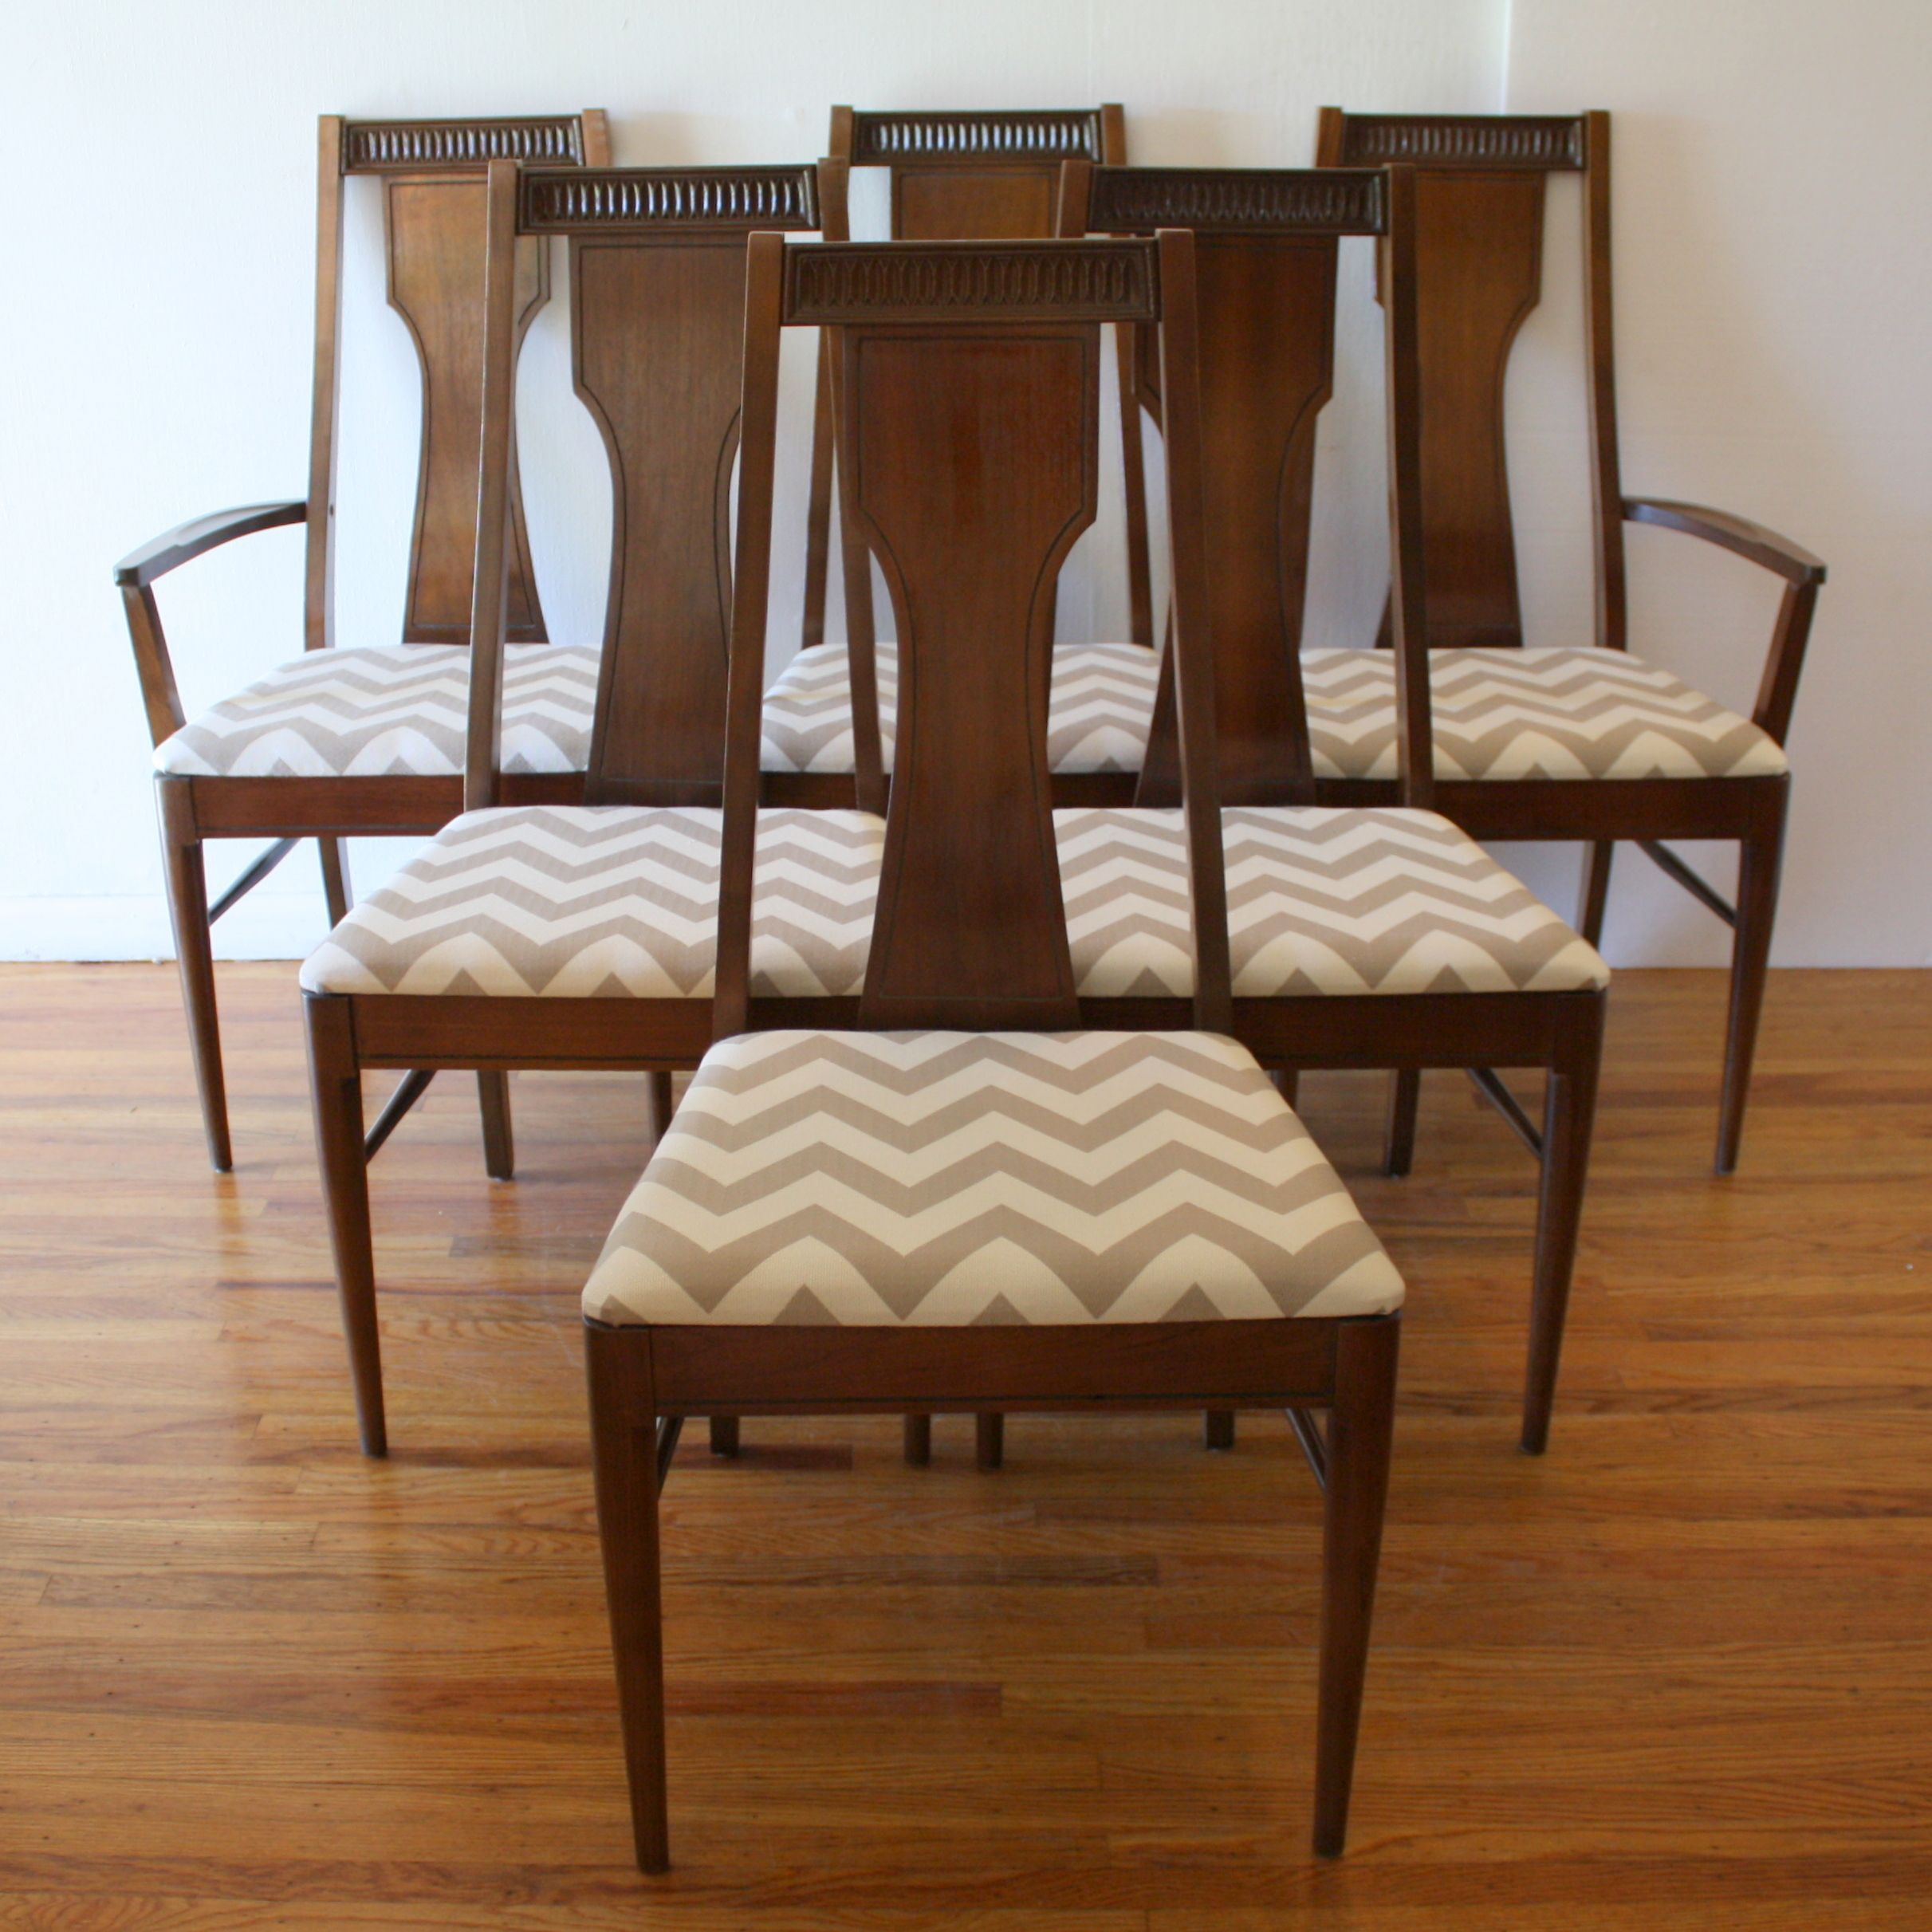 Mid century modern dining chair set by Broyhill upholstered with new